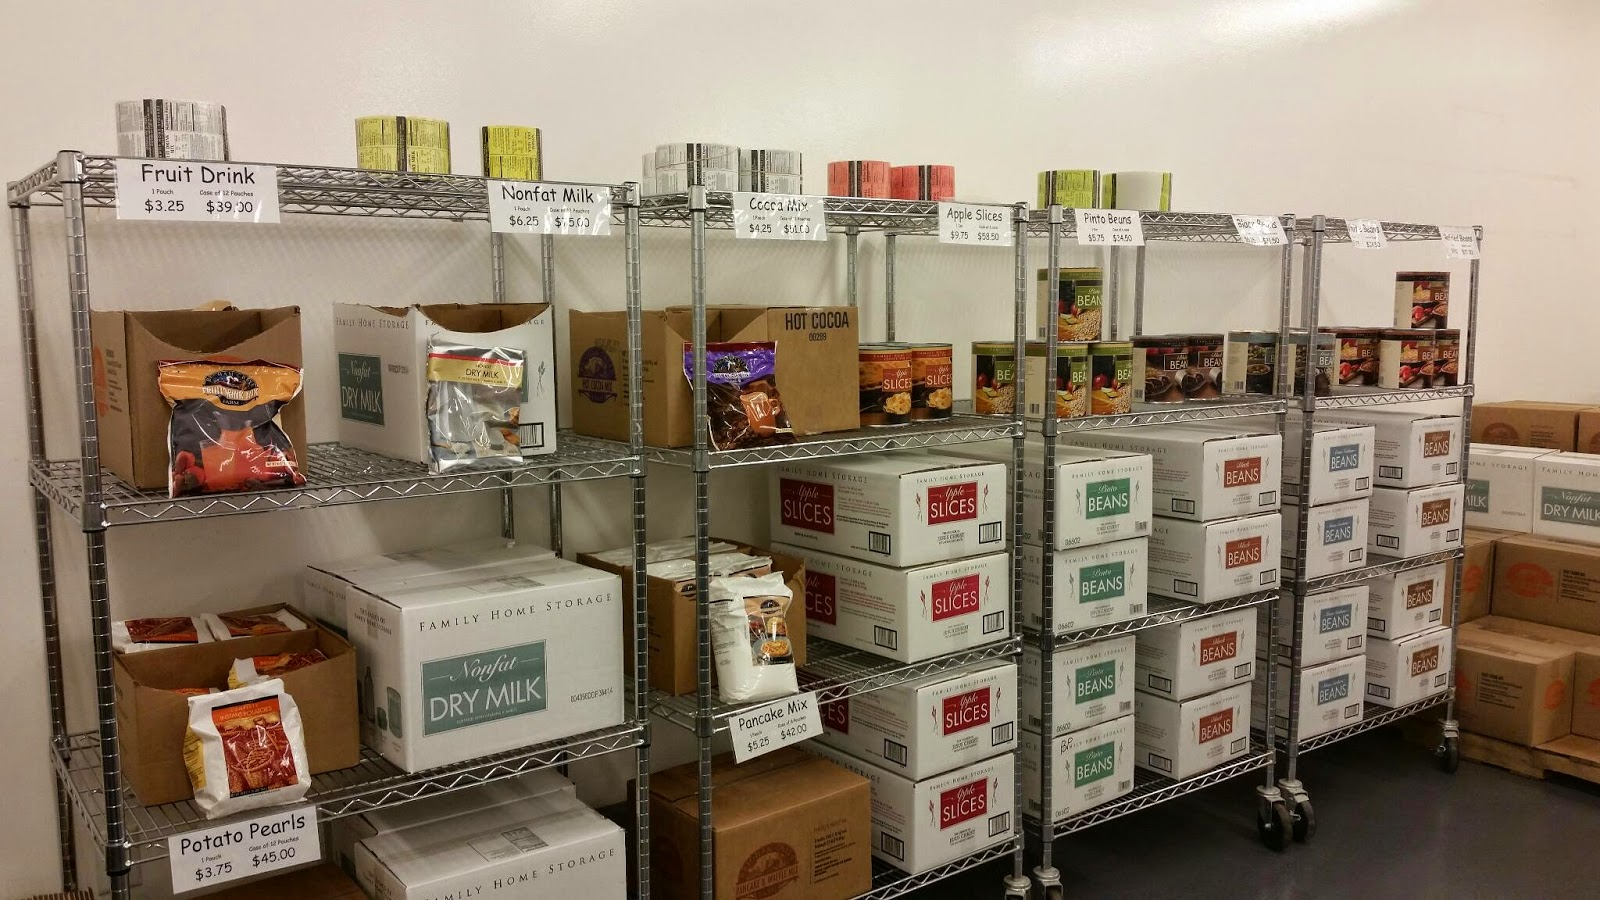 Prepared LDS Family: My Visit to The Layton Home Storage Center